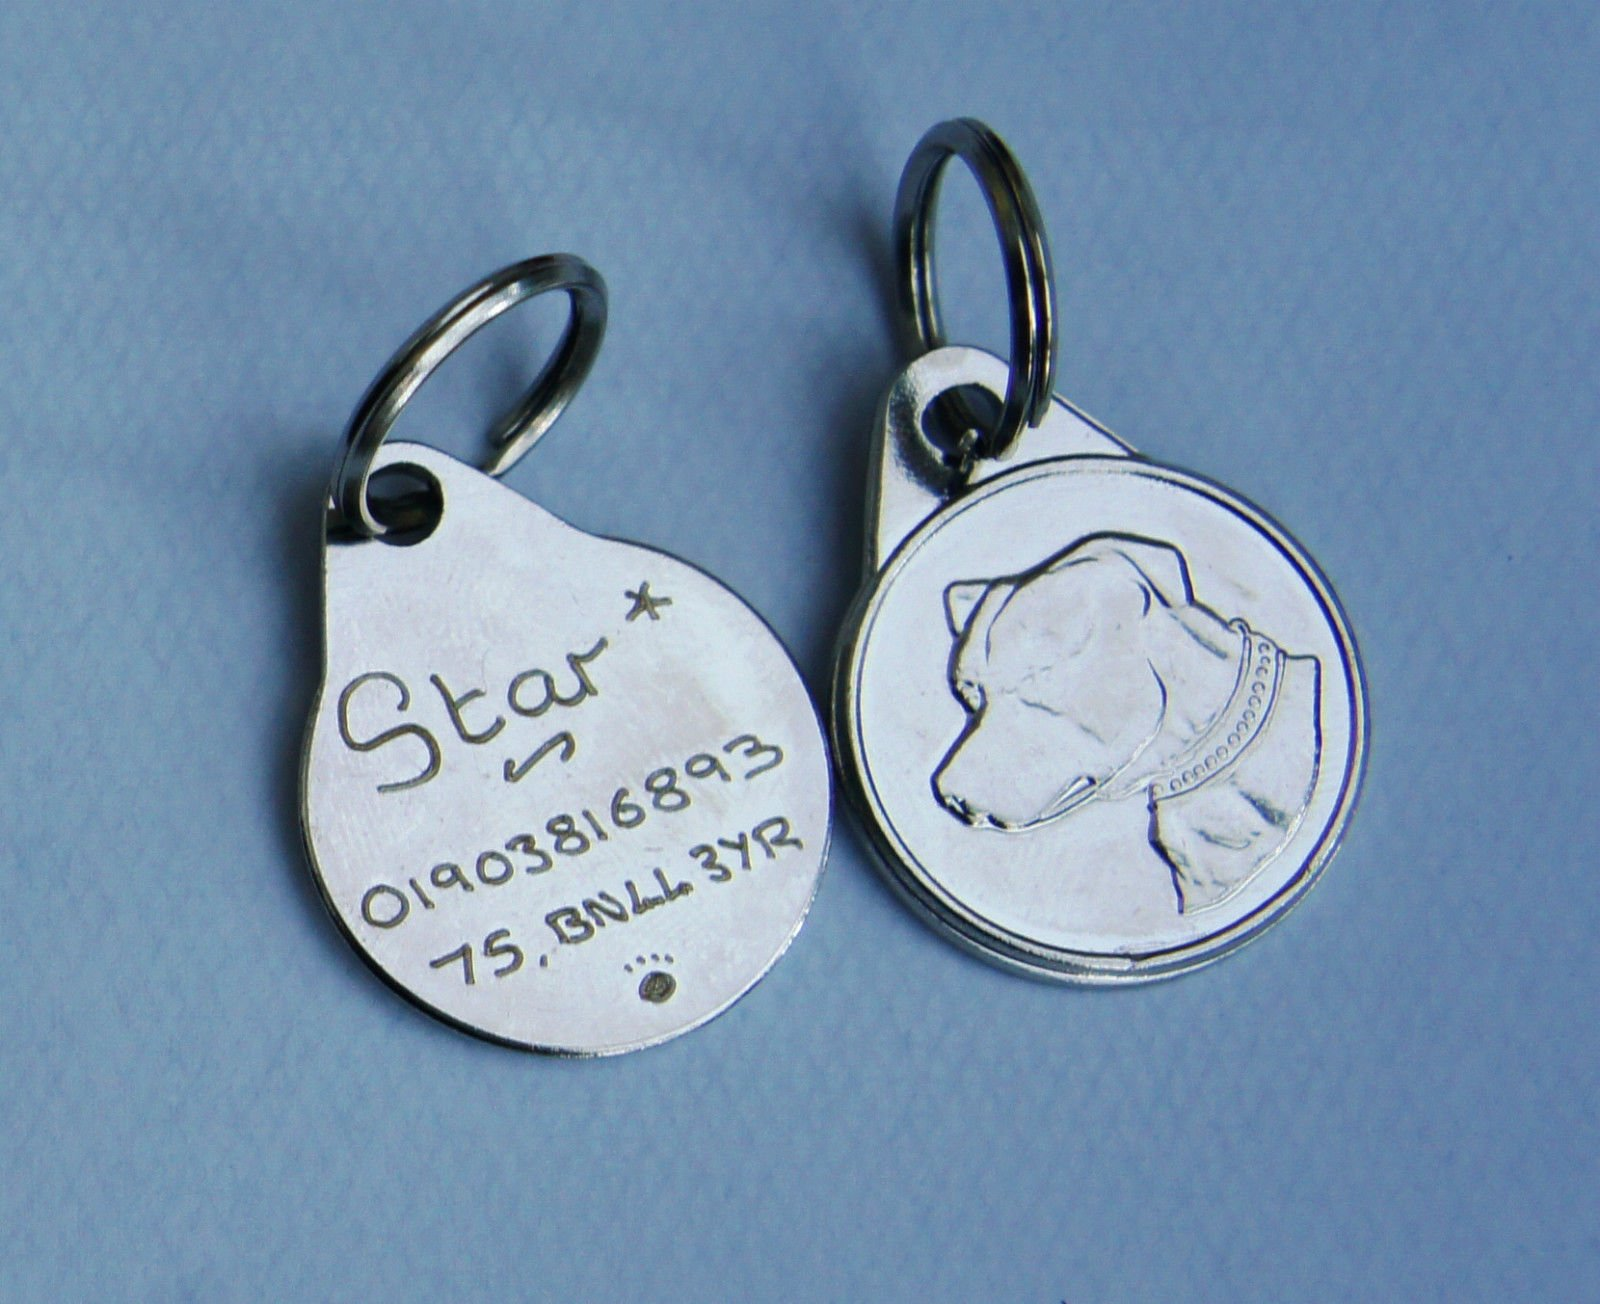 STAFFIE TAG STAFFORDSHIRE BULL TERRIER DOG TAG 25MM HAND ENGRAVED TAG – PLEASE TICK GIFT MESSAGE BOX TO ENTER DETAILS FOR ENGRAVING, MESSAGE US BY CLICKING CONTACT SELLER OR CALL US ON 01903 816893